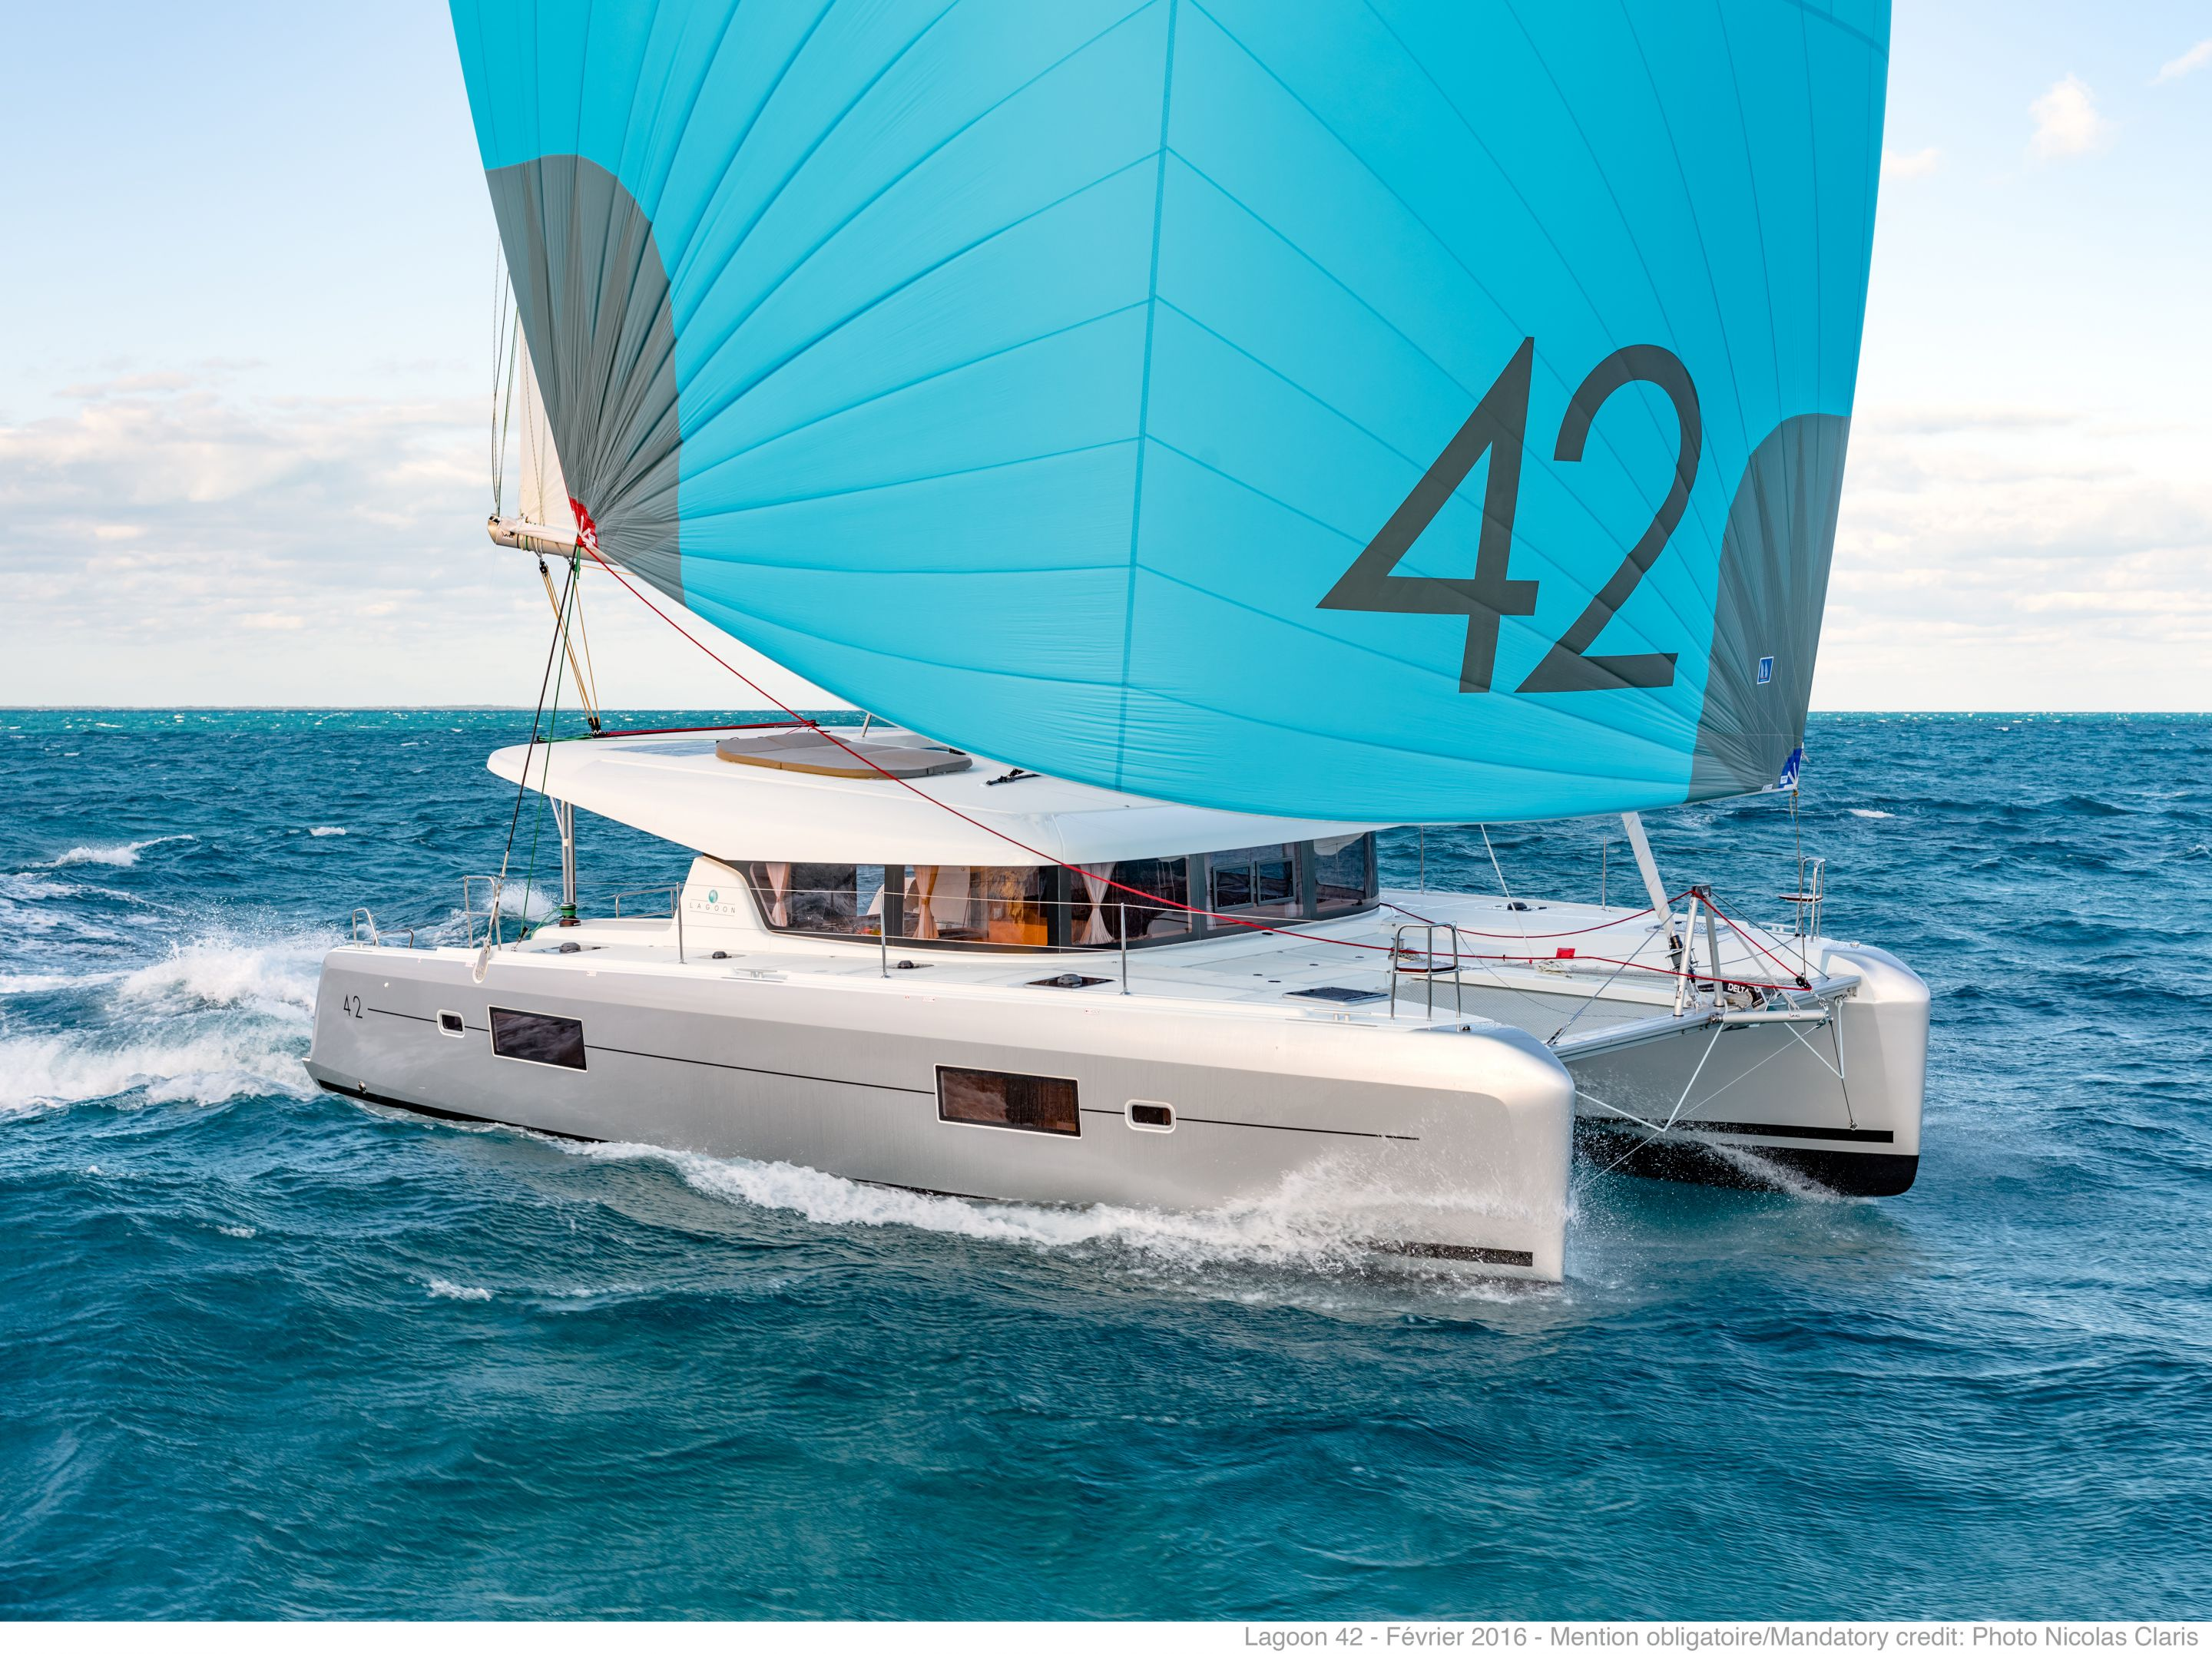 2 Latest Listings and 3 Price Cuts on Catamarans.com | Boat